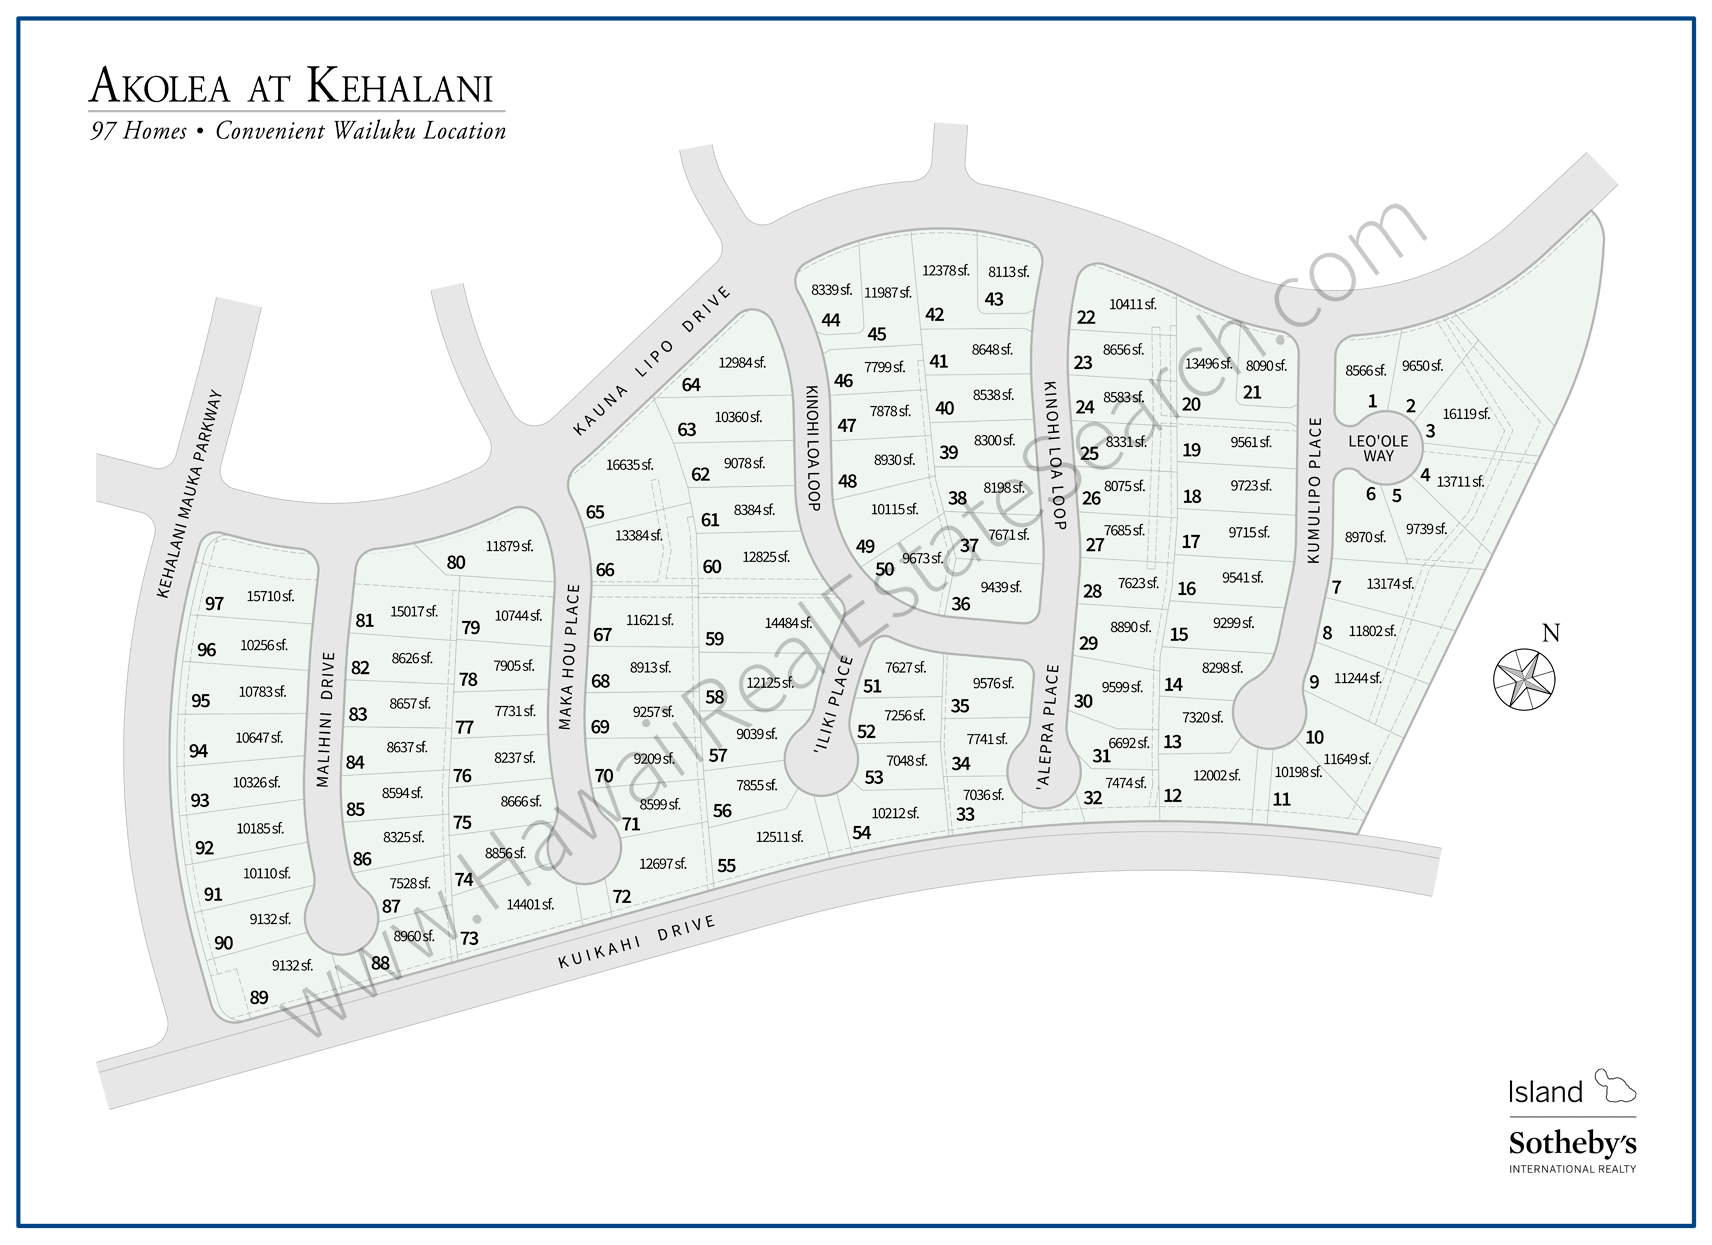 Akolea at Kehalani Neighborhood Map